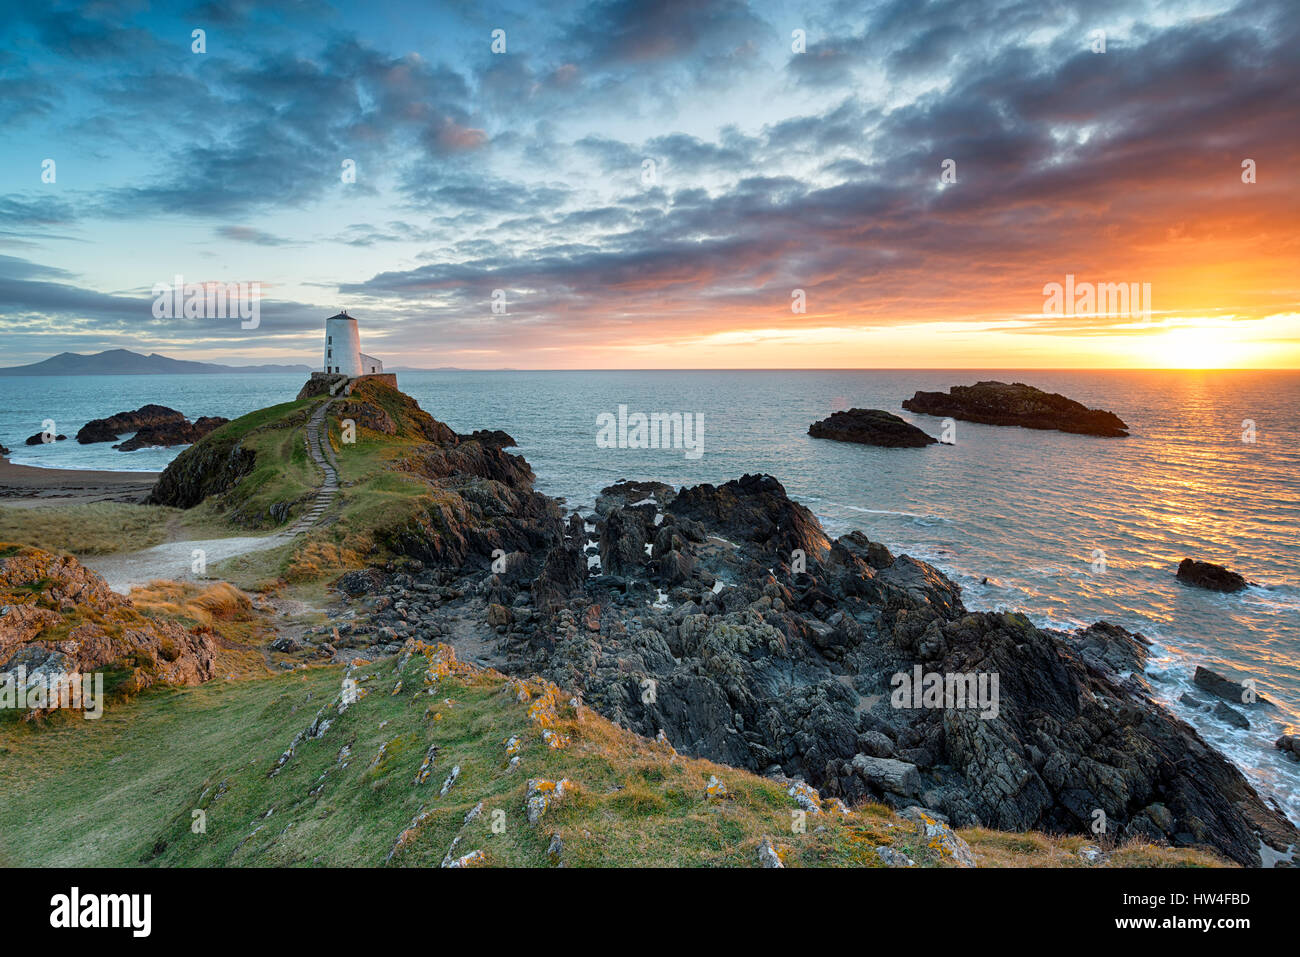 Stunning sunset over the Twr Mawr lighthouse on Ynys Llanddwyn on the Anglesey coast in north Wales - Stock Image